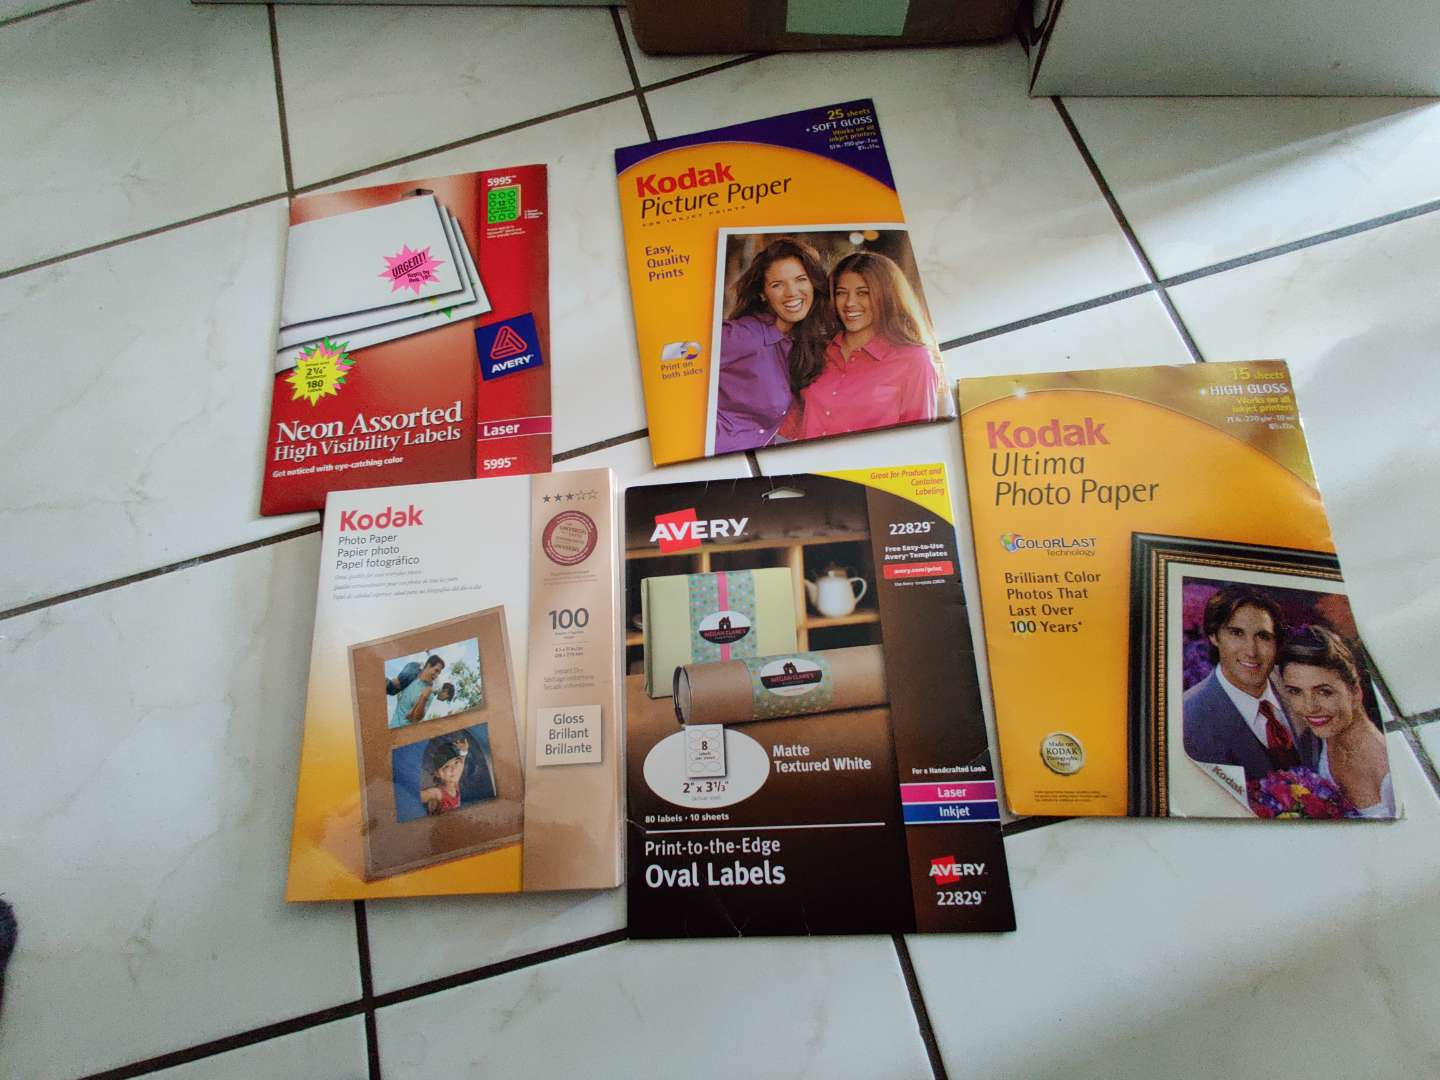 367 5 packs of photo paper